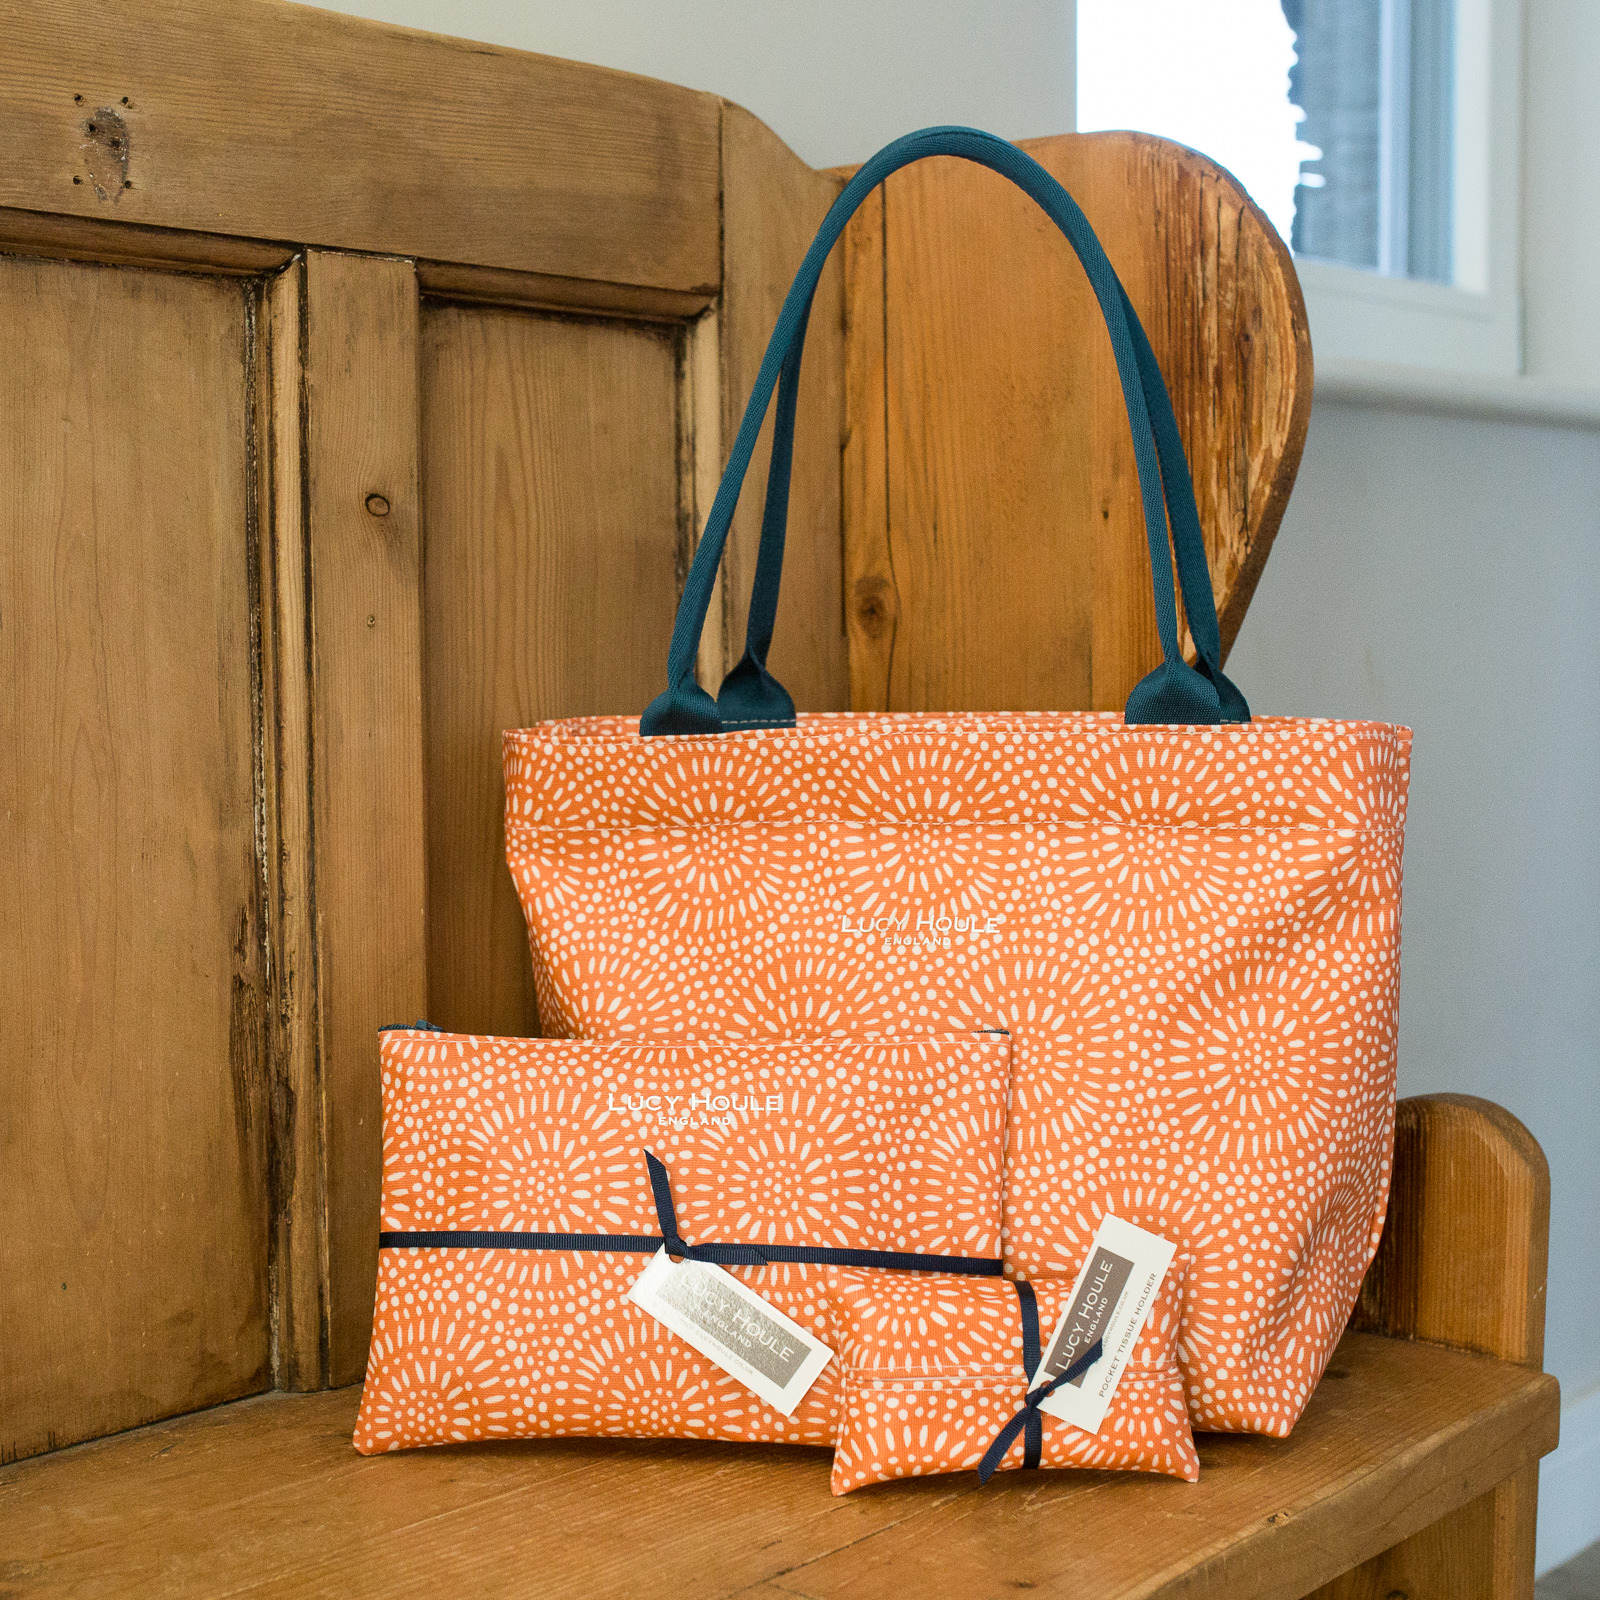 Amber Sunburst Tote Bag Gift Set